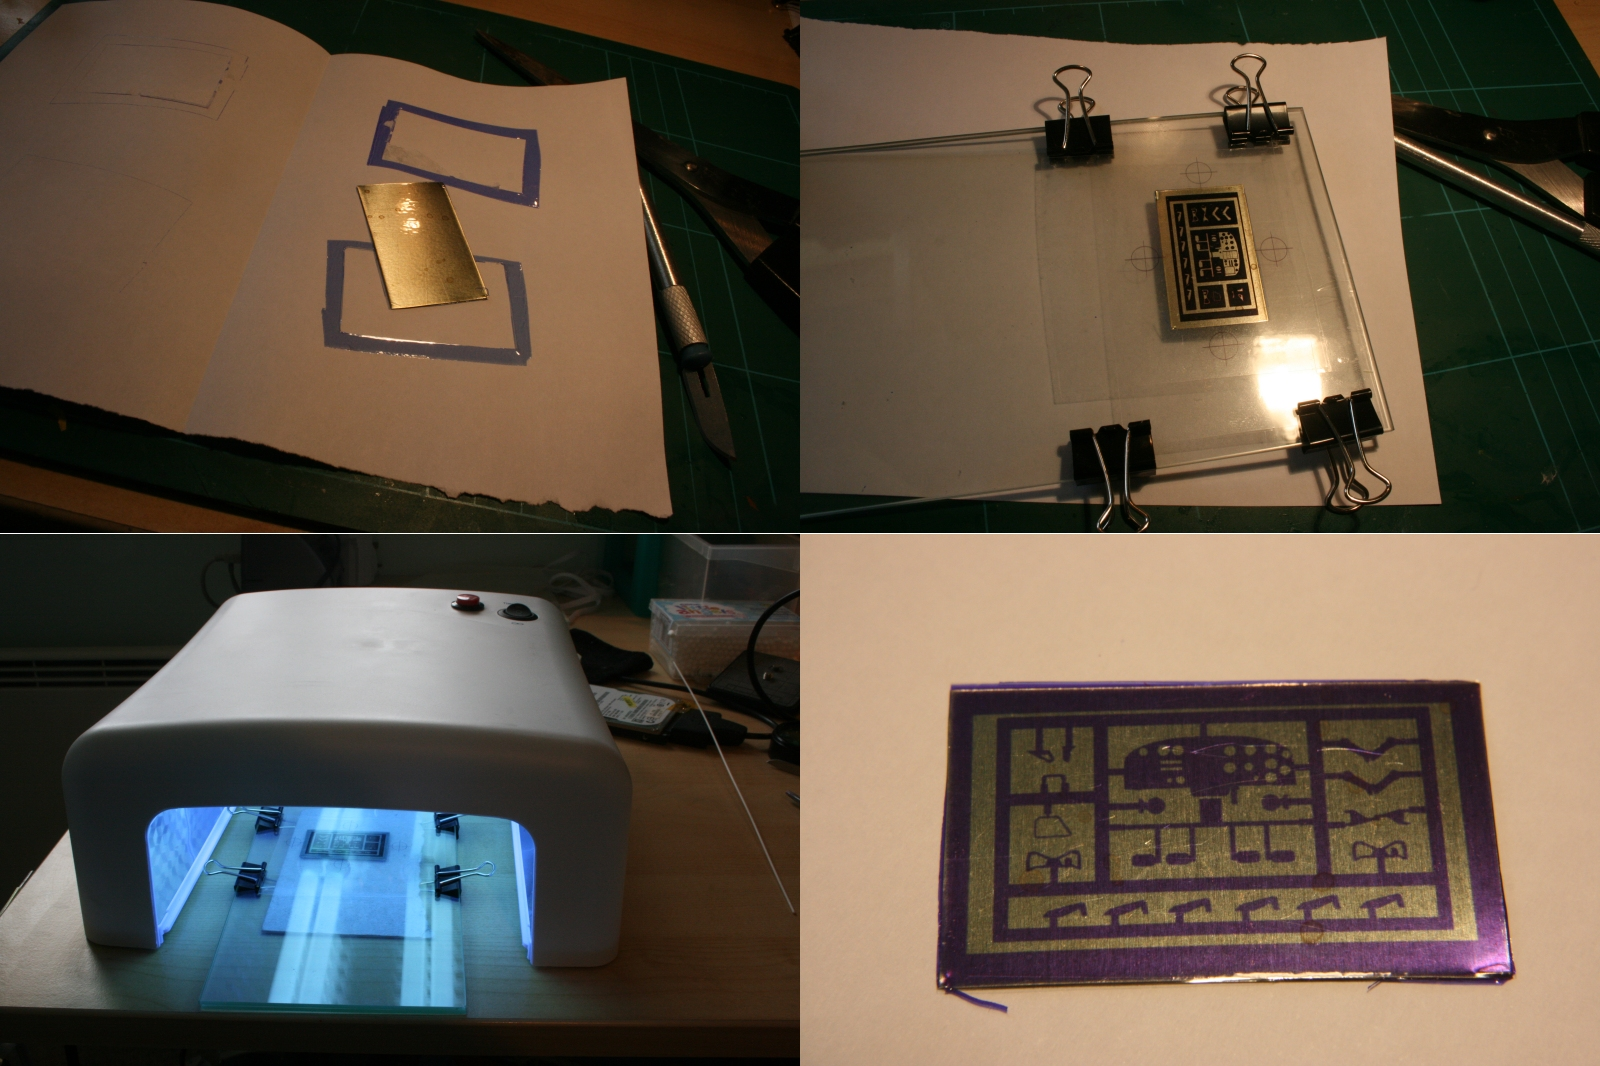 How To Make Photo Etched Parts At Home Modelling Tips Resist Method Of Etching A Printed Circuit Board Youtube 9398435821 Fb0adcbbc5 H